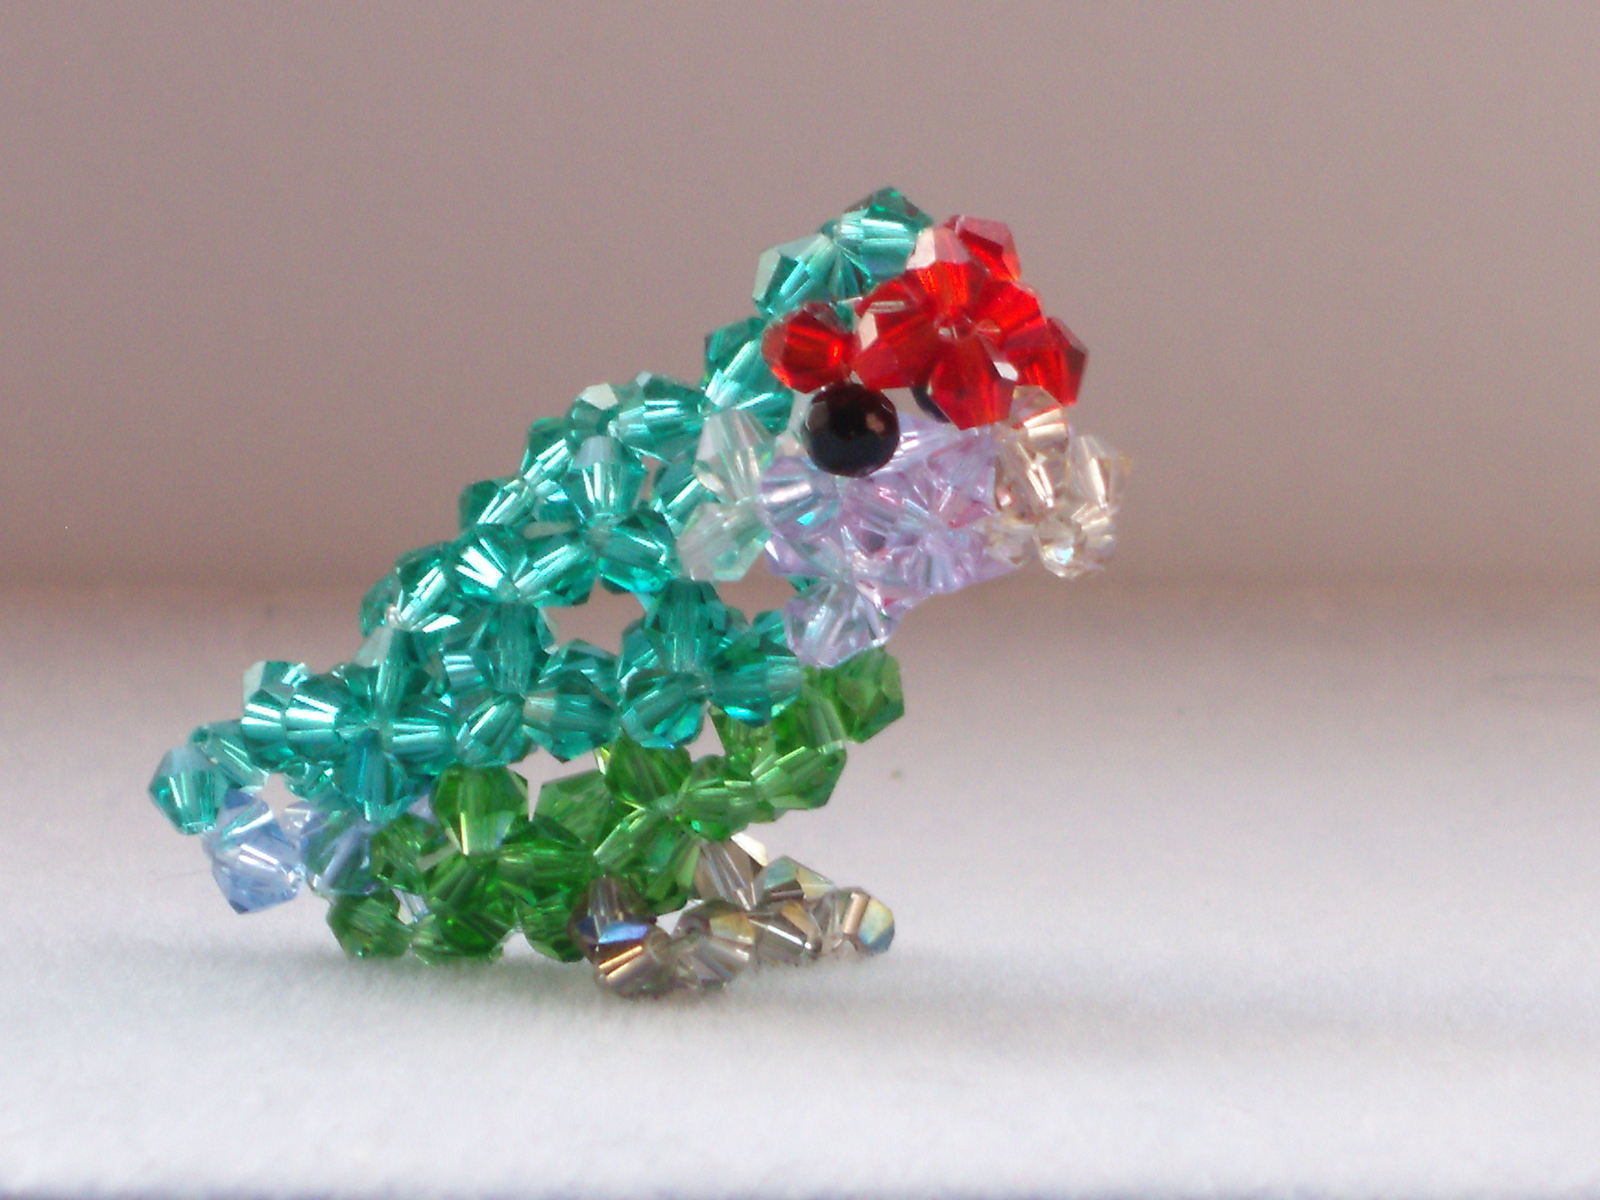 Beaded Animals 183 A Beaded Animal 183 Beadwork On Cut Out